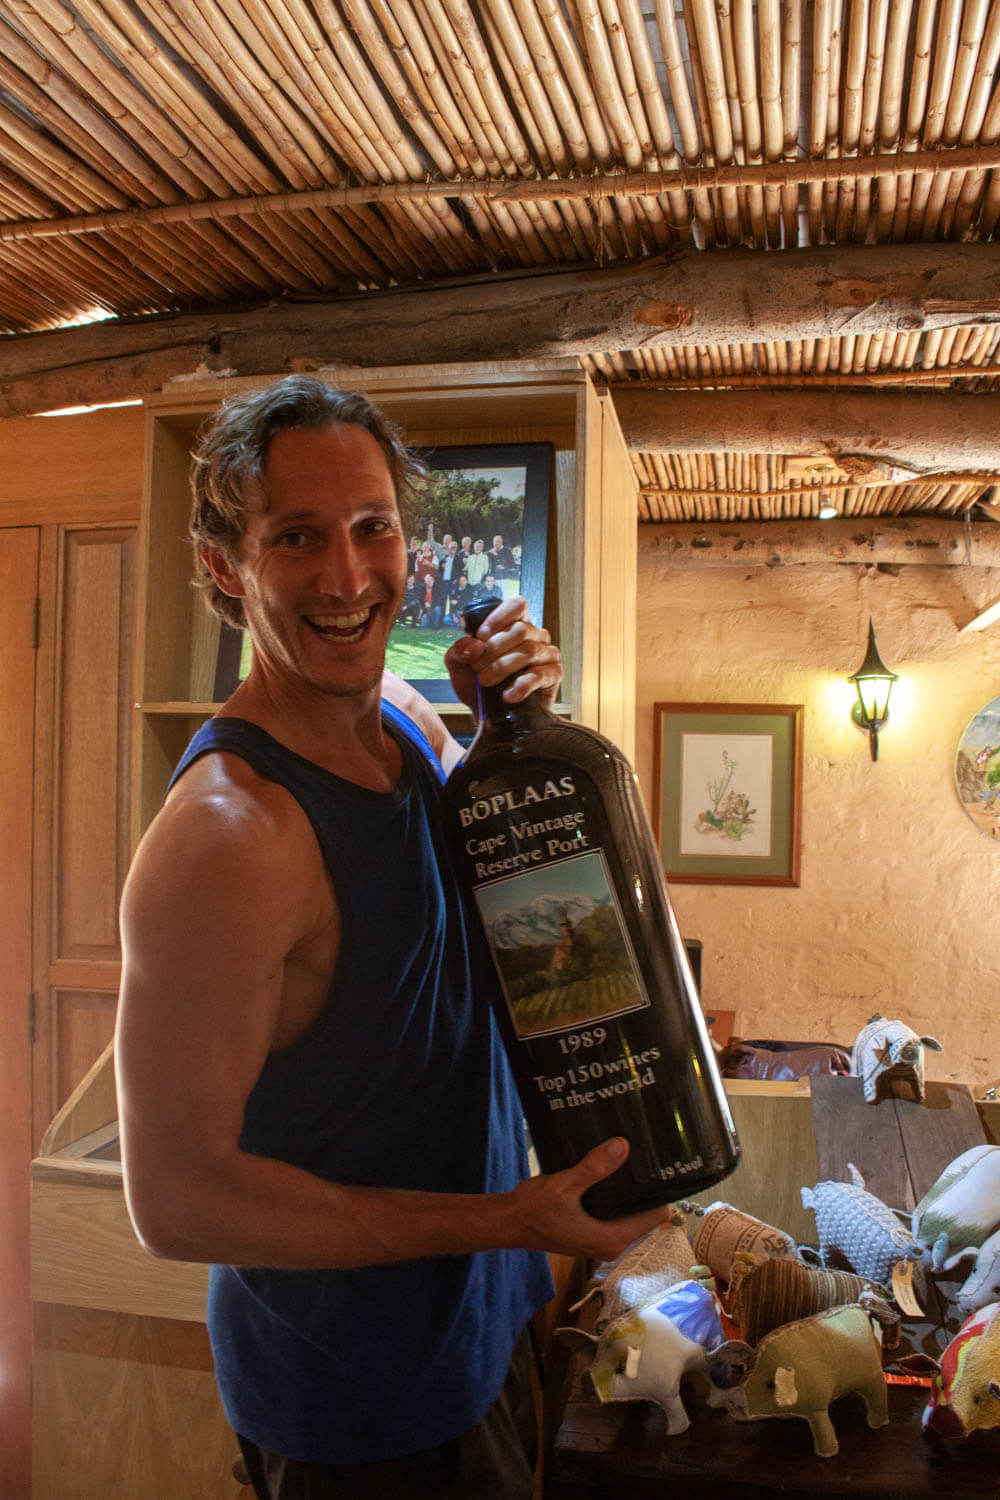 Chris holding giant wine bottle at Boplaas